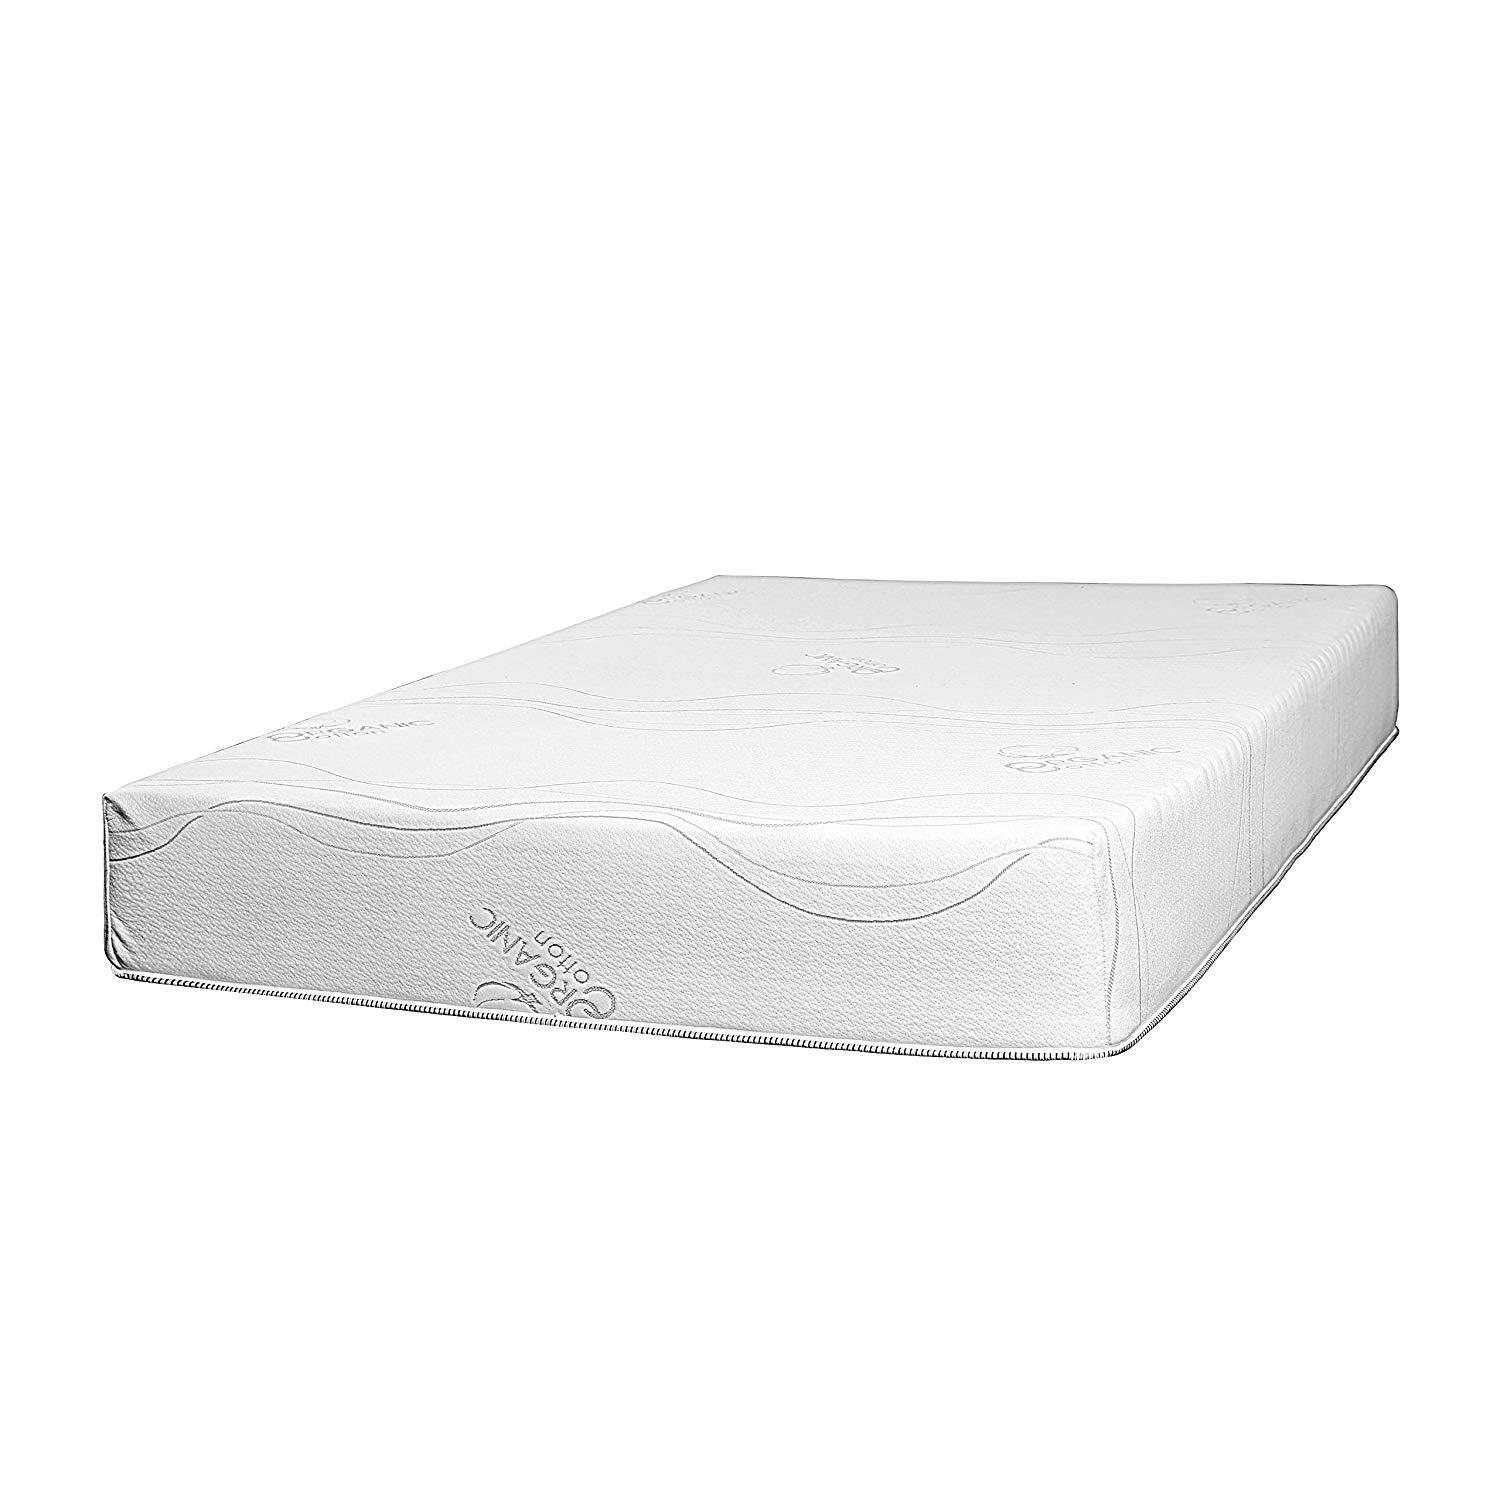 Latex Foam Mattress King with Organic Cotton Cover